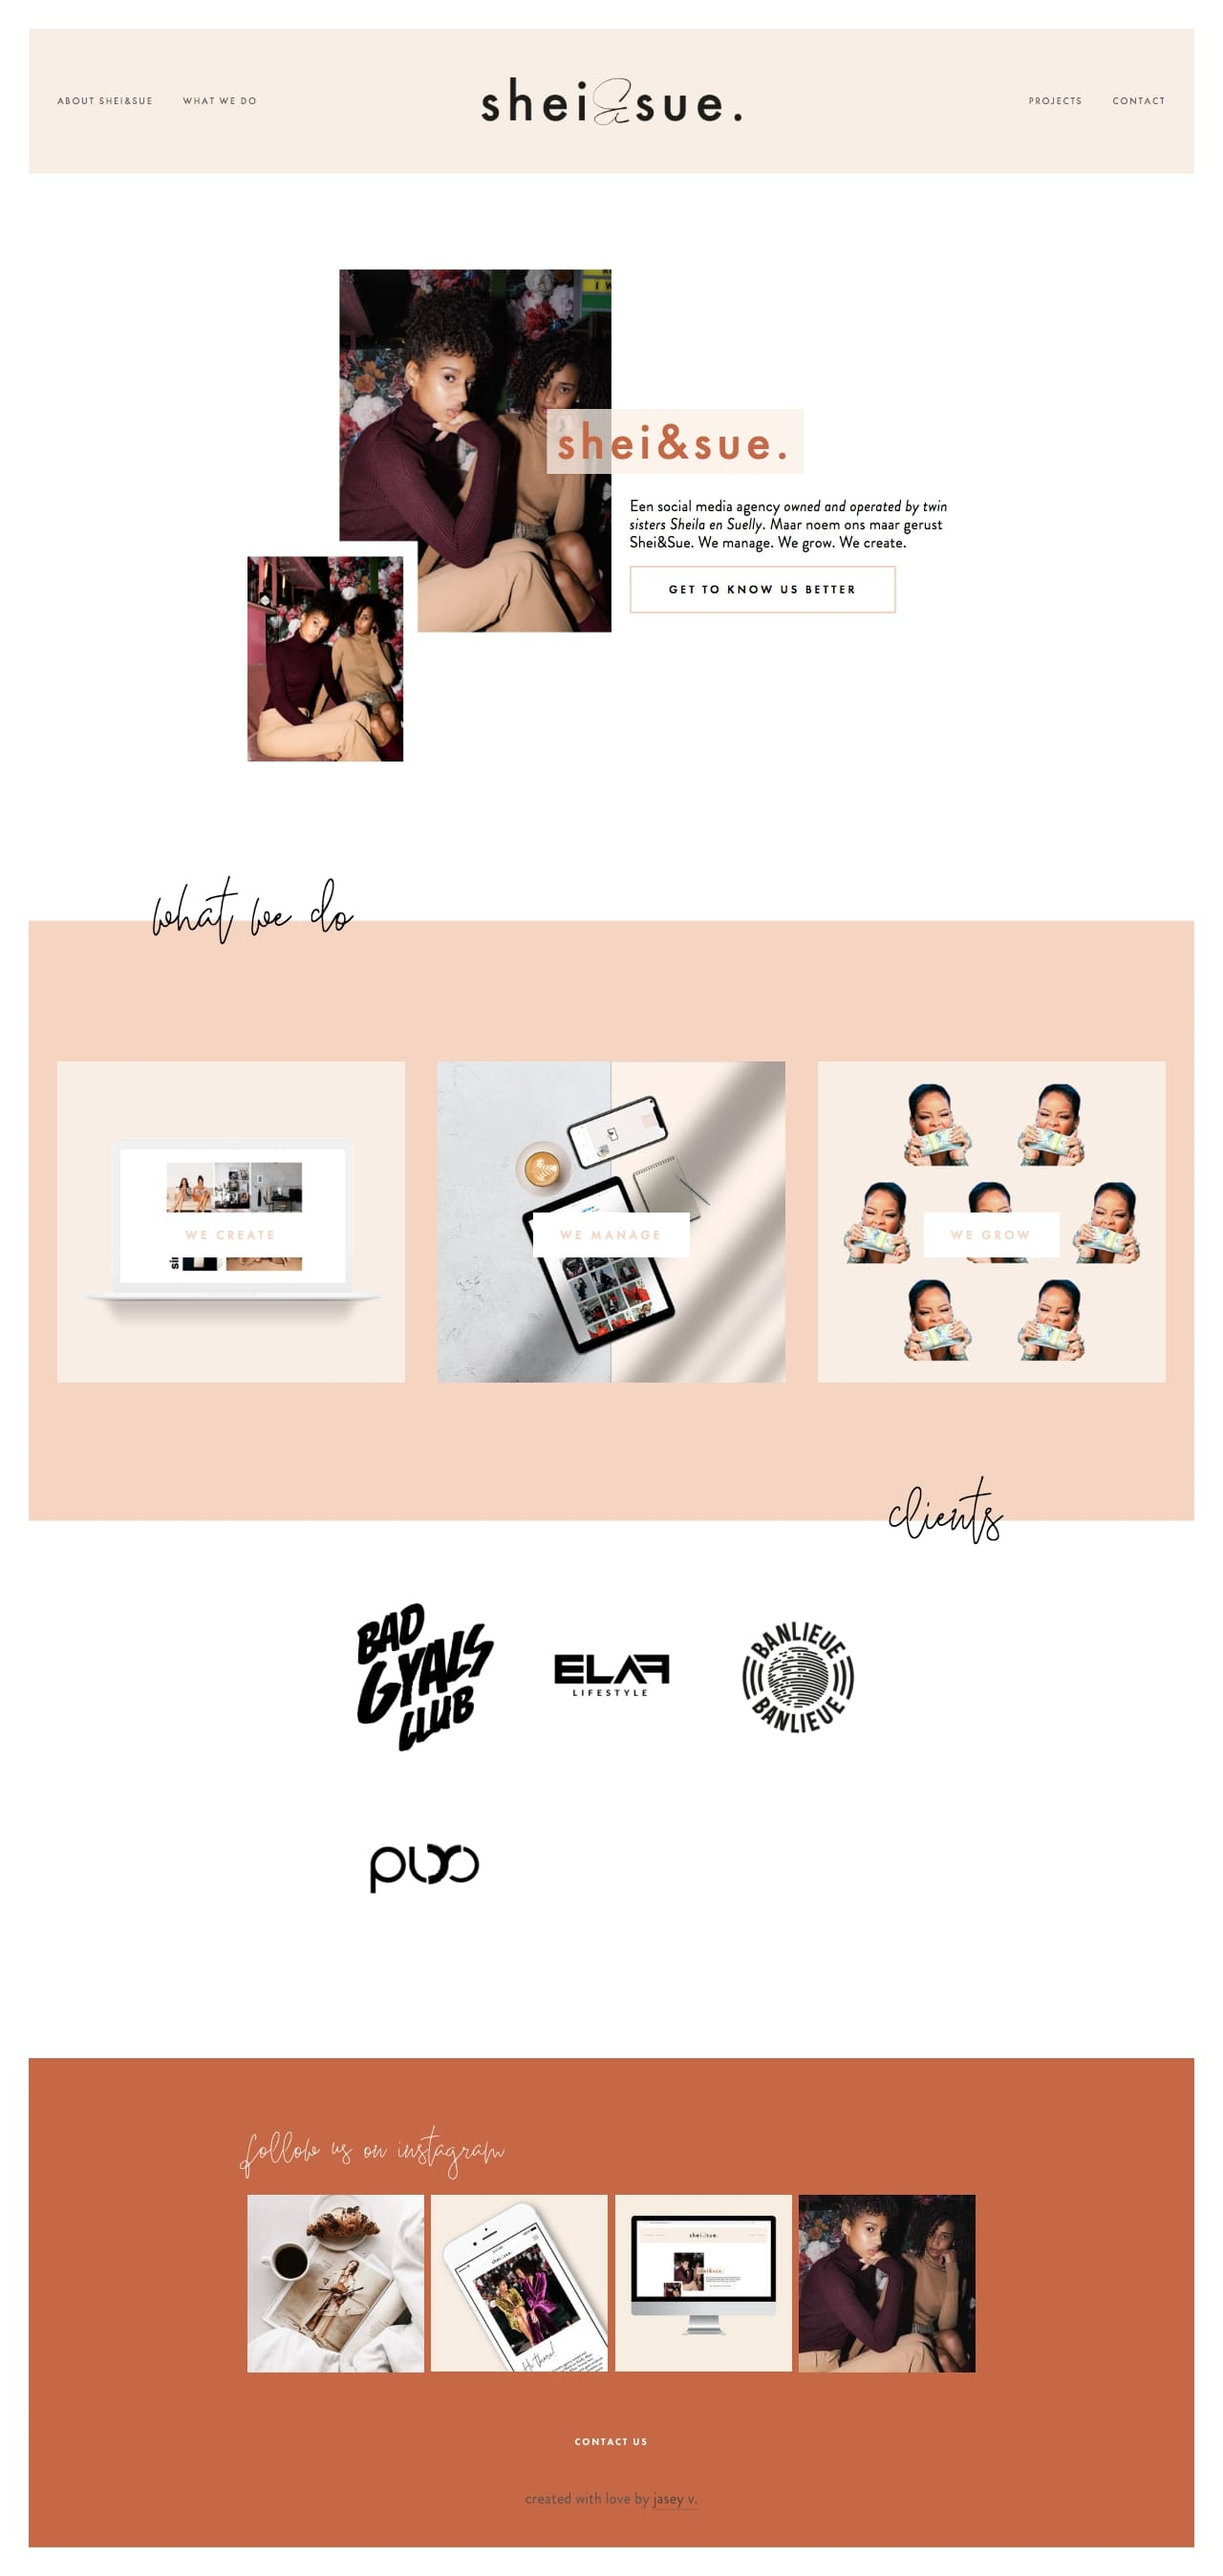 shei-and-sue-best-example-of-squarespace-website-for-marketing-website.jpg